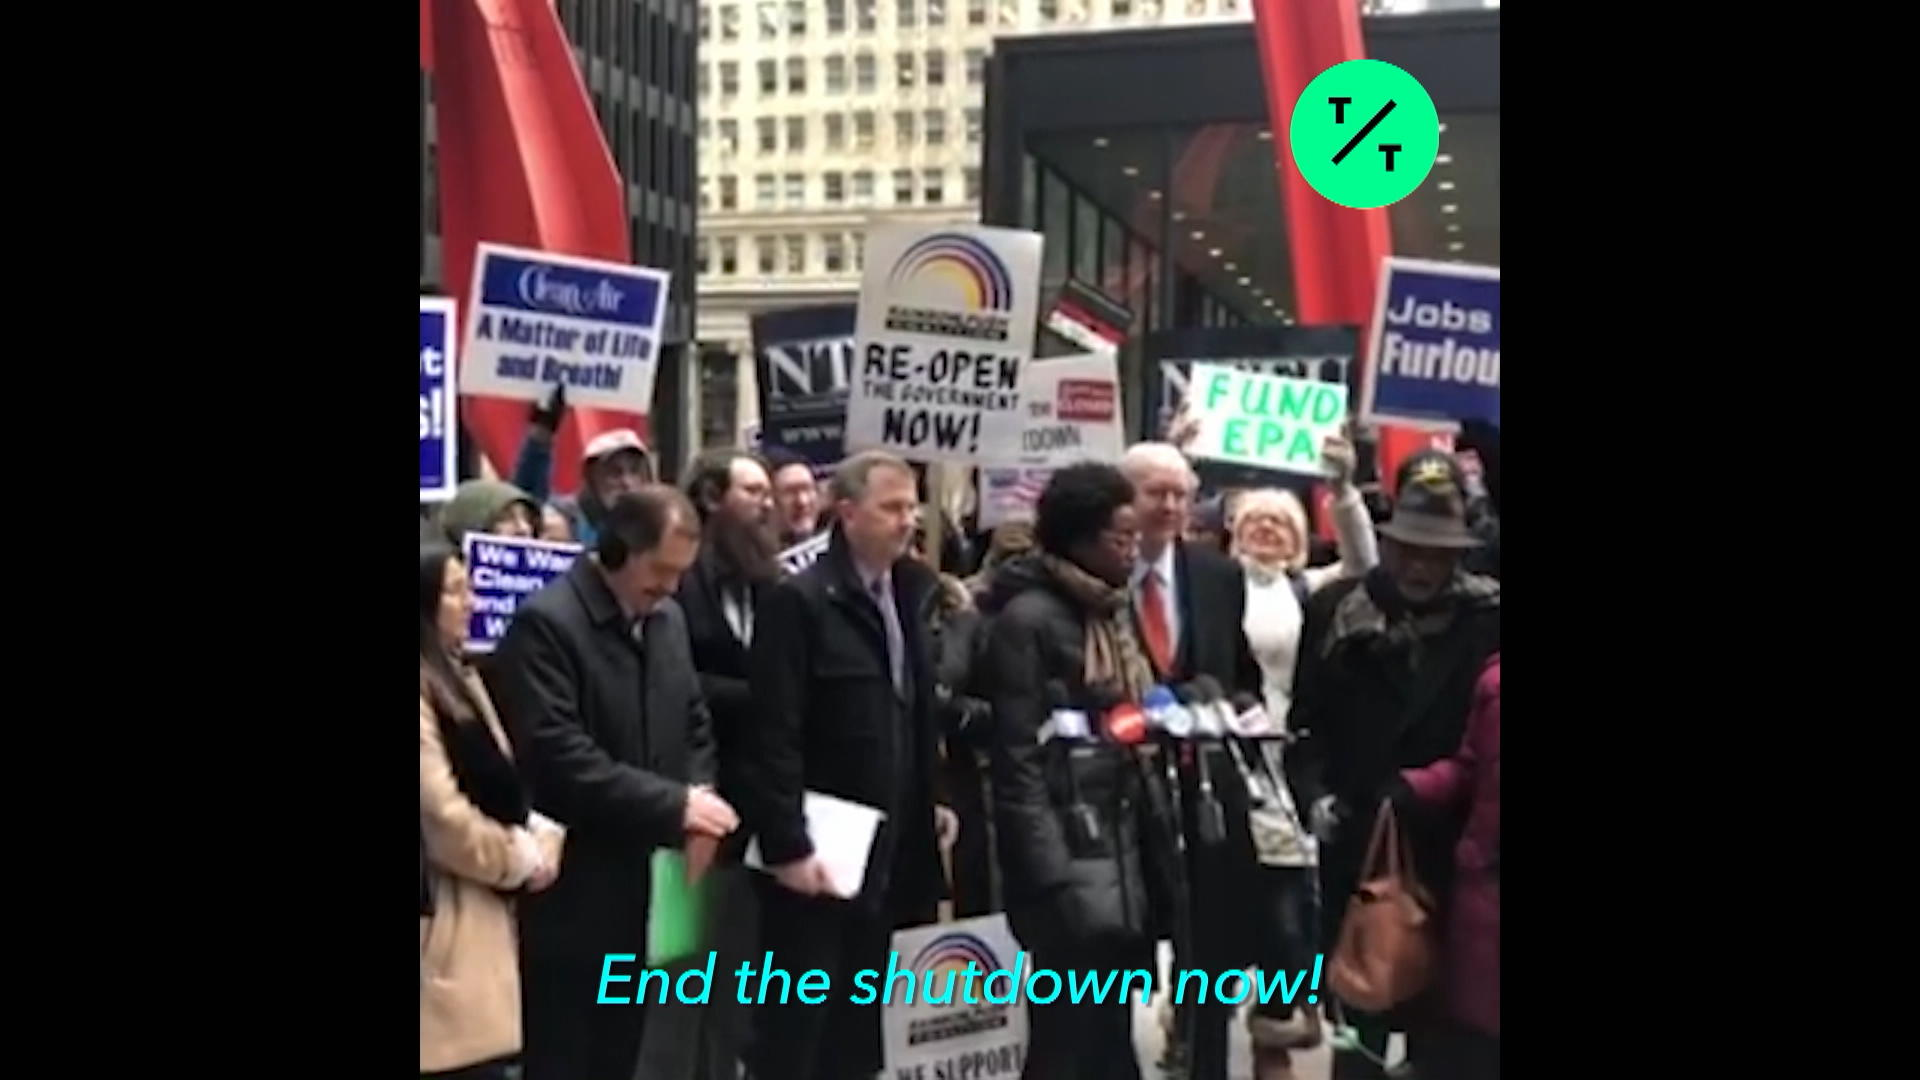 Rep. Underwood on the shutdown